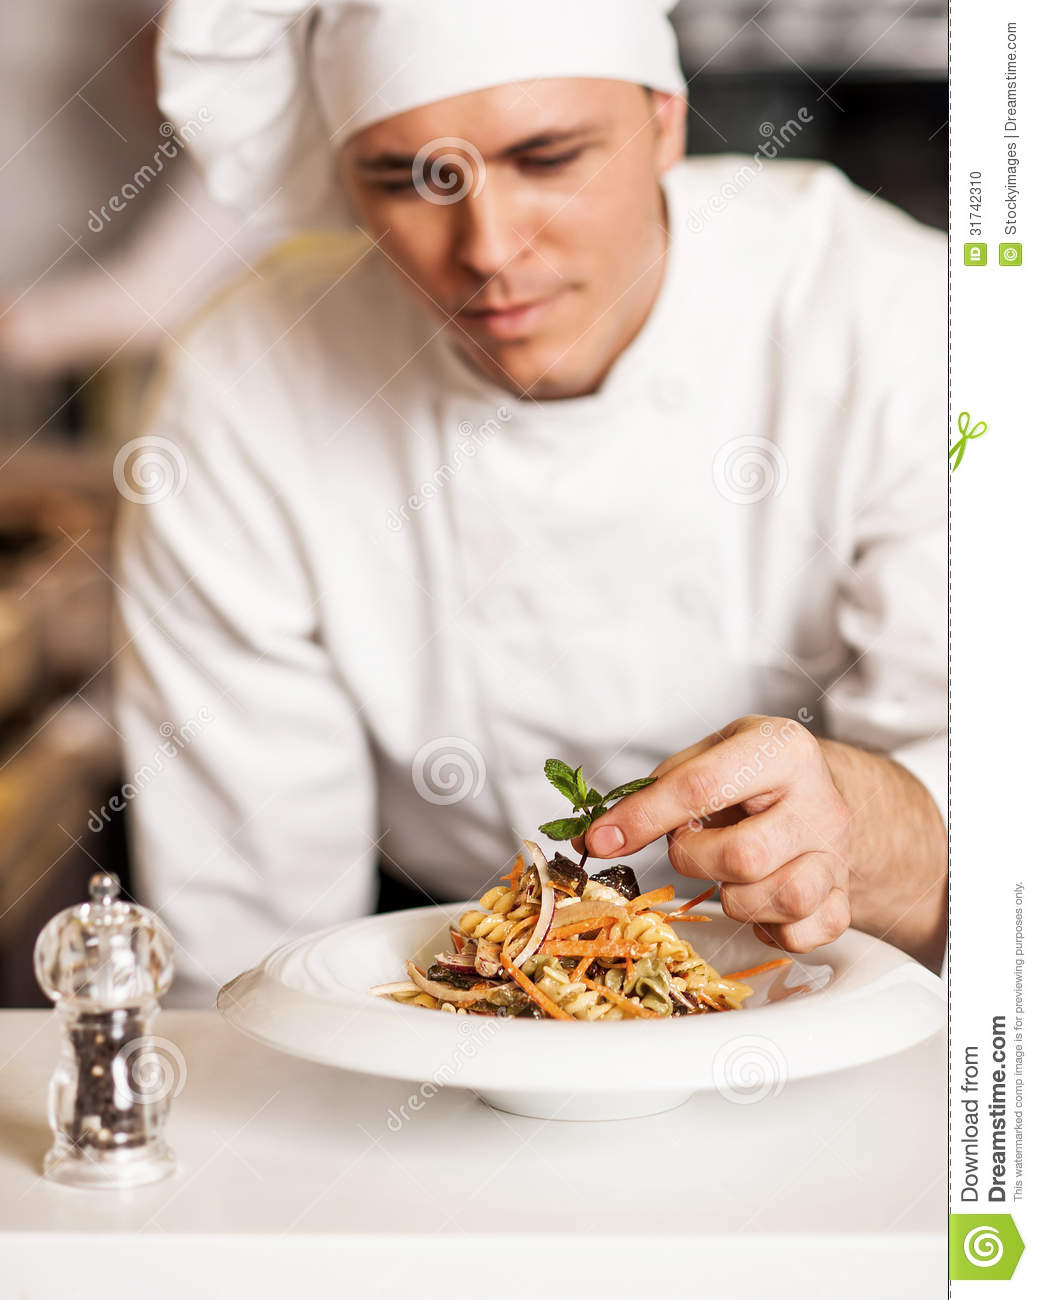 Chef Decorating Pasta Salad With Herbal Leaves Stock Photo - Image ...